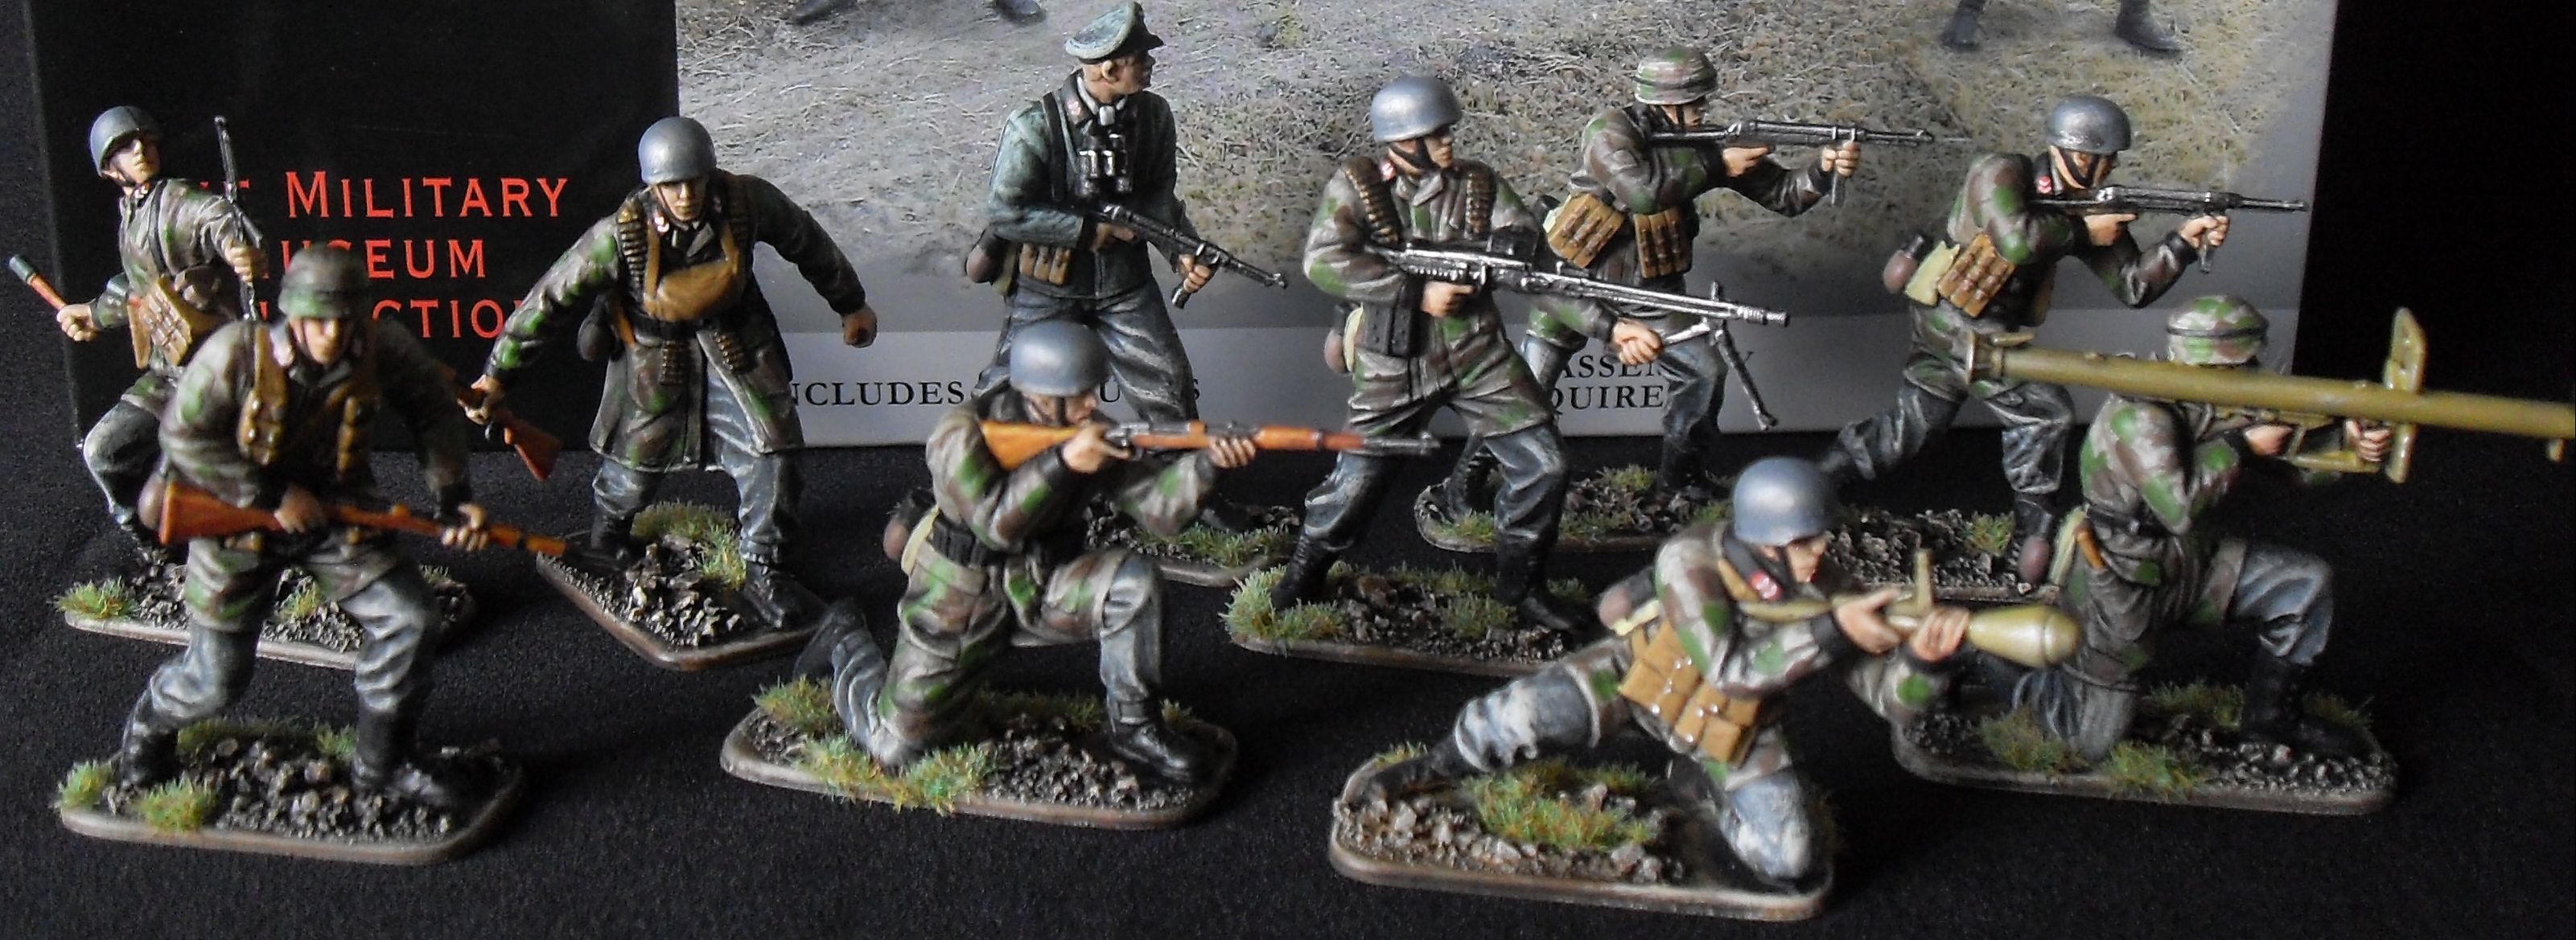 G Gunter Hand Painted 54mm Model Soldiers - 1/16 and 1/32 scale